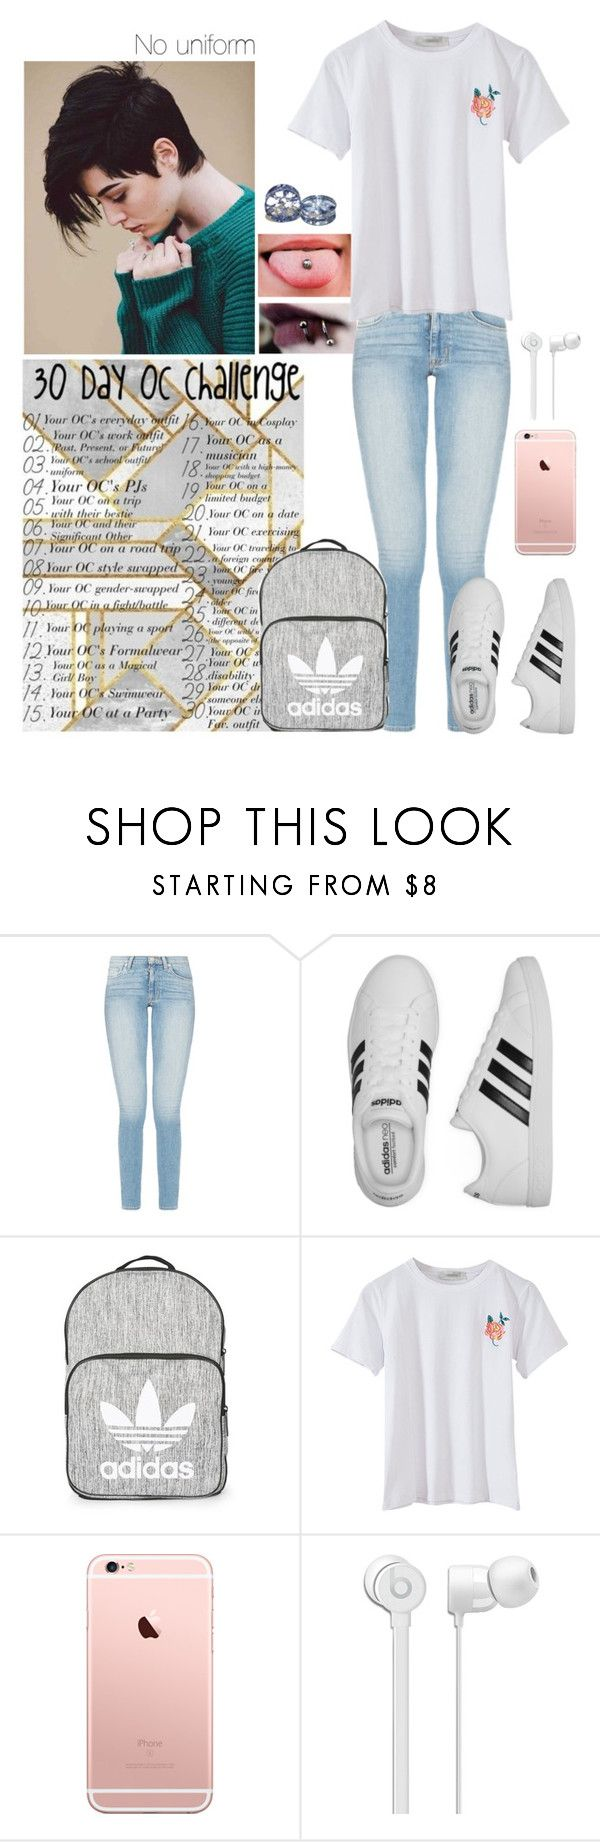 """Day 3- Your OC' school uniform."" by sunshinelarry ❤ liked on Polyvore featuring adidas, Topshop, BackToSchool, school, 30daychallenge and schooloutfits"